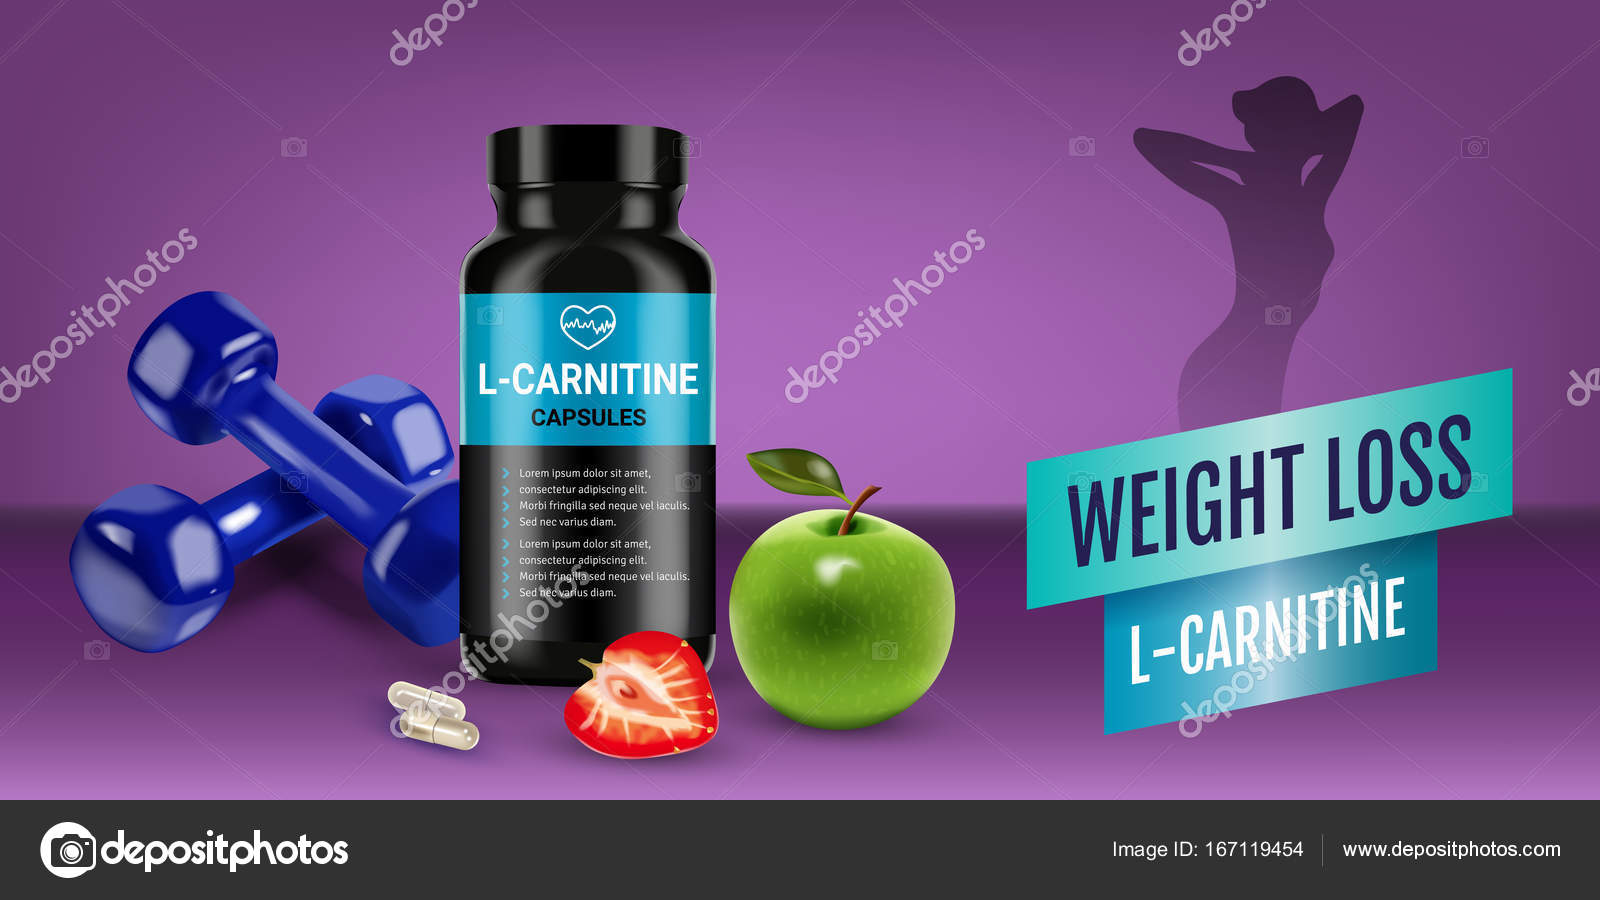 Weight Loss L Carnitine Ads Vector Realistic Illustration Of Cans